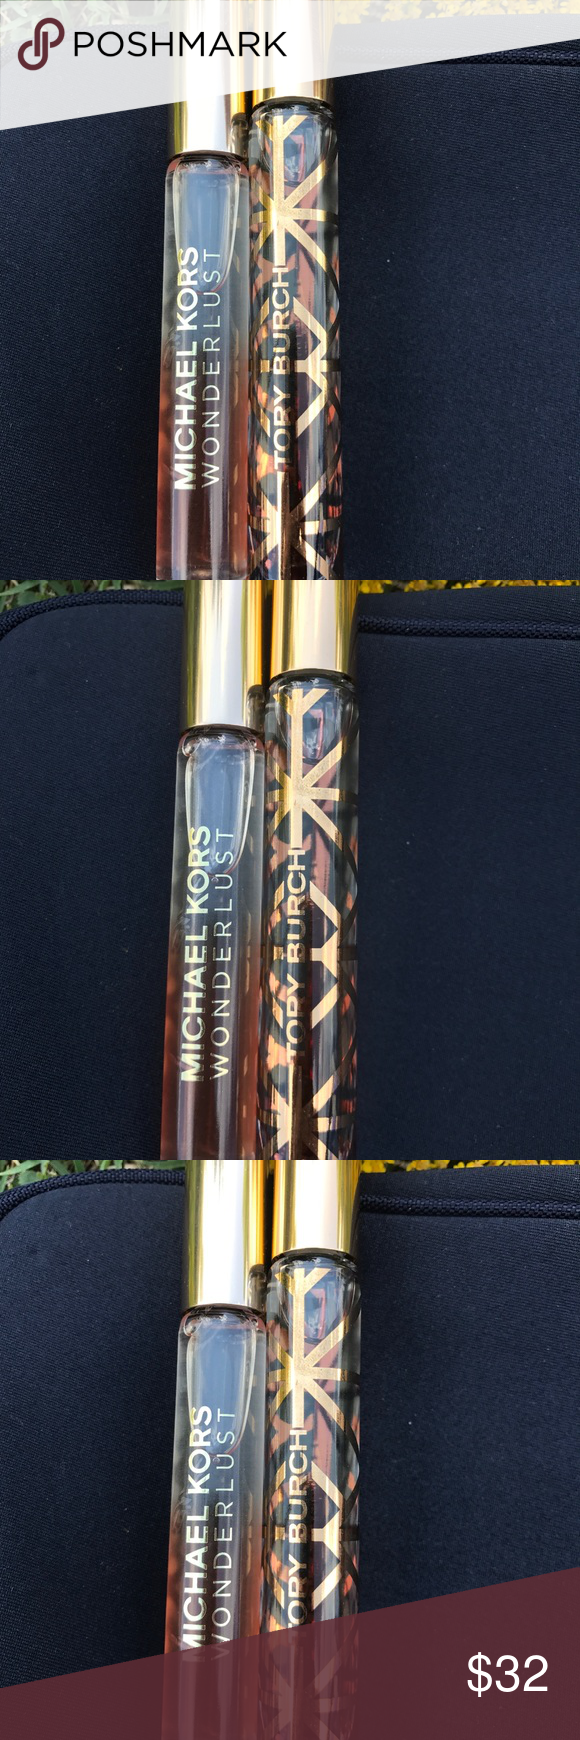 6671d4dda45e 2 of Micheal Kors wanderlust and Tory Burch roller MICHAEL KORS Wonderlust  Rollerball 0.34 oz  10 mL Eau de Parfum Tory Burch Eau De Parfum Rollerball  From ...